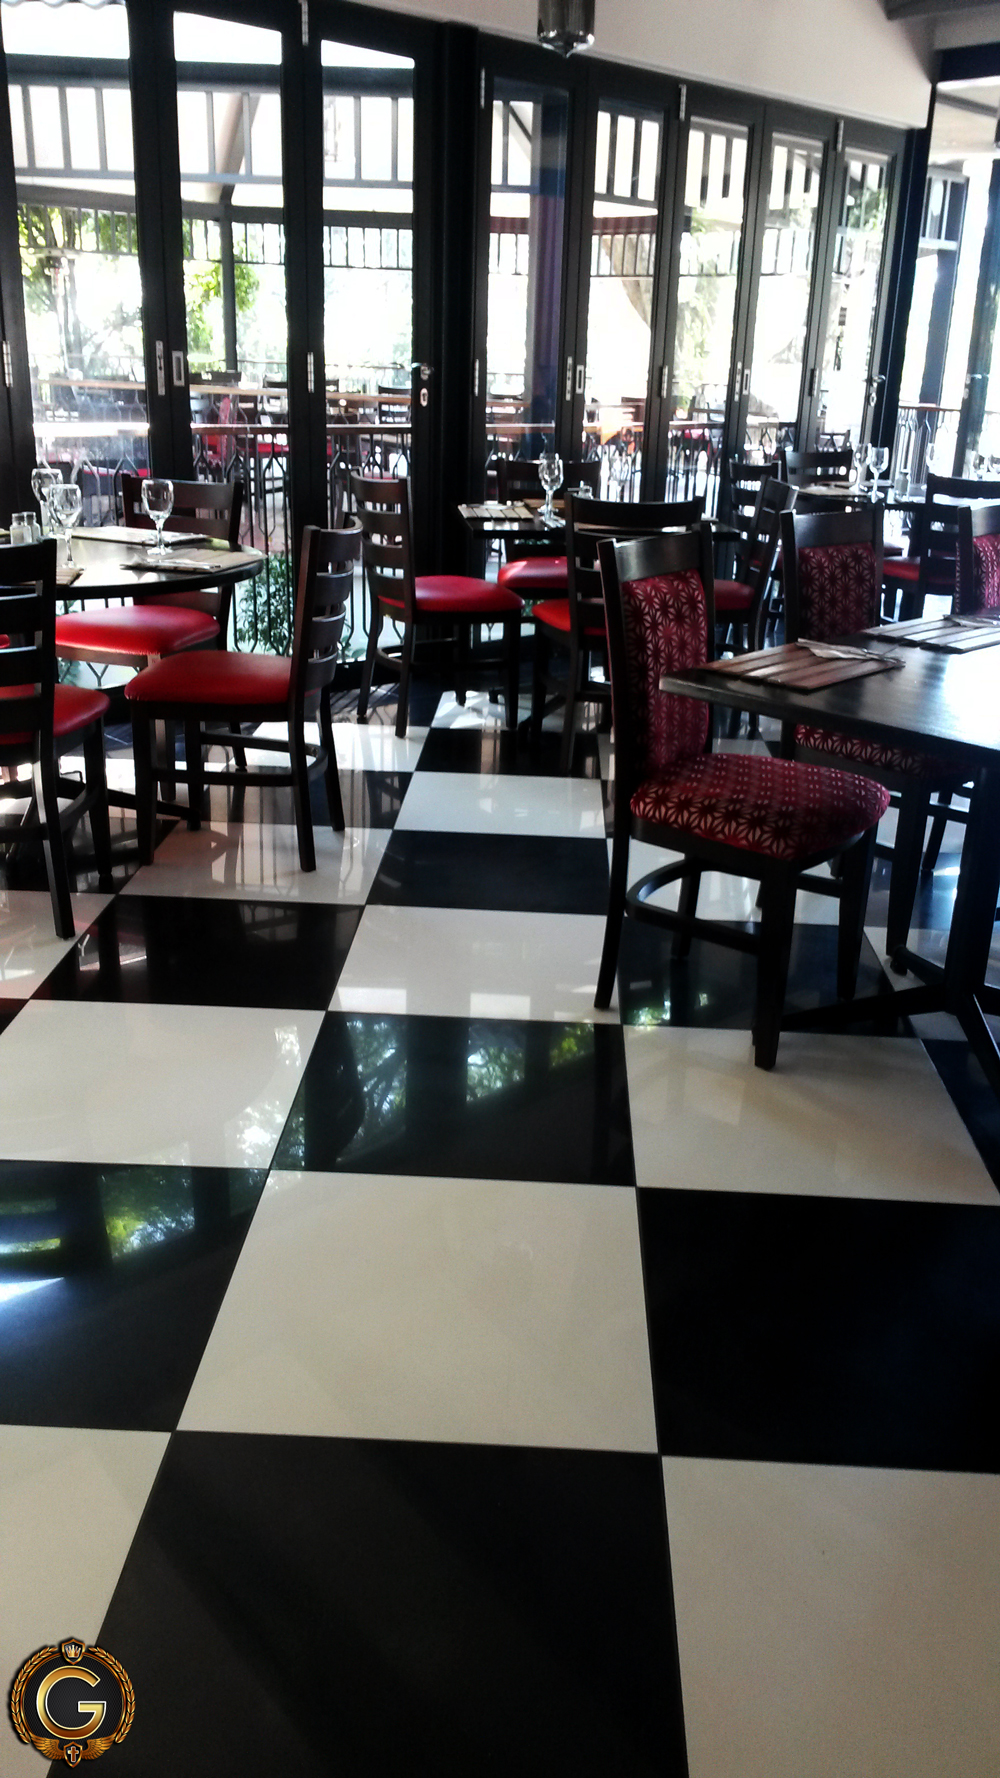 Mikes Kitchen Main Road Bryanston (Review) | Random things from G